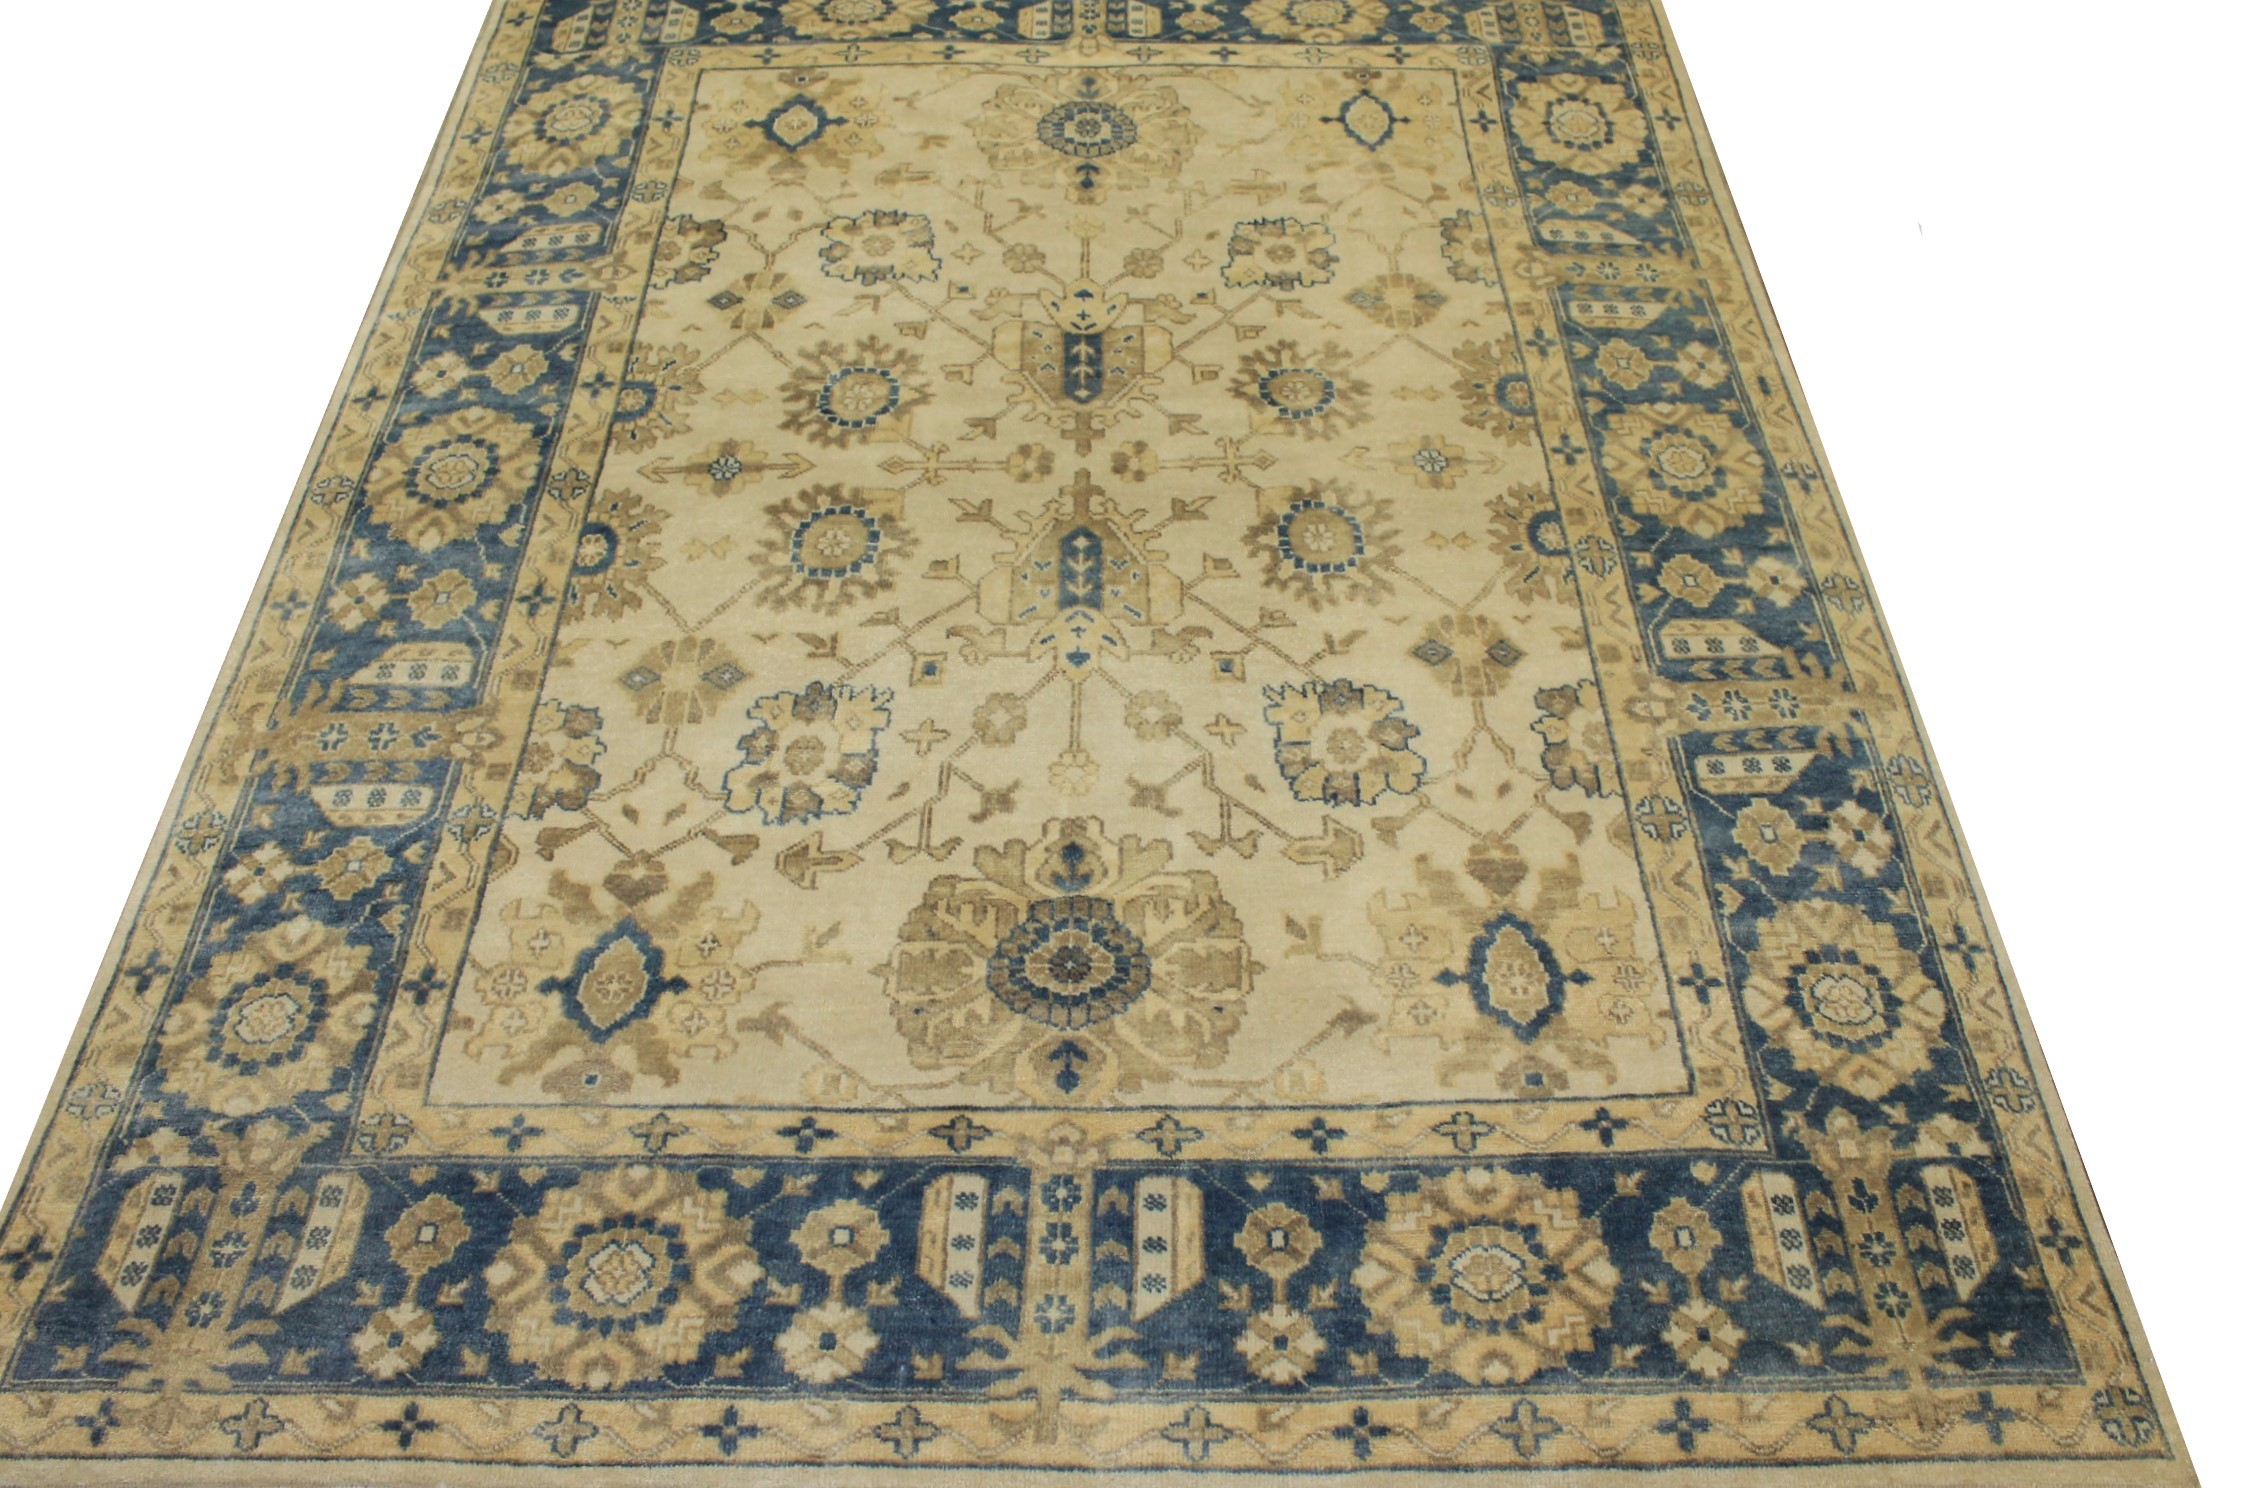 8x10 Oushak Hand Knotted Wool Area Rug - MR17226